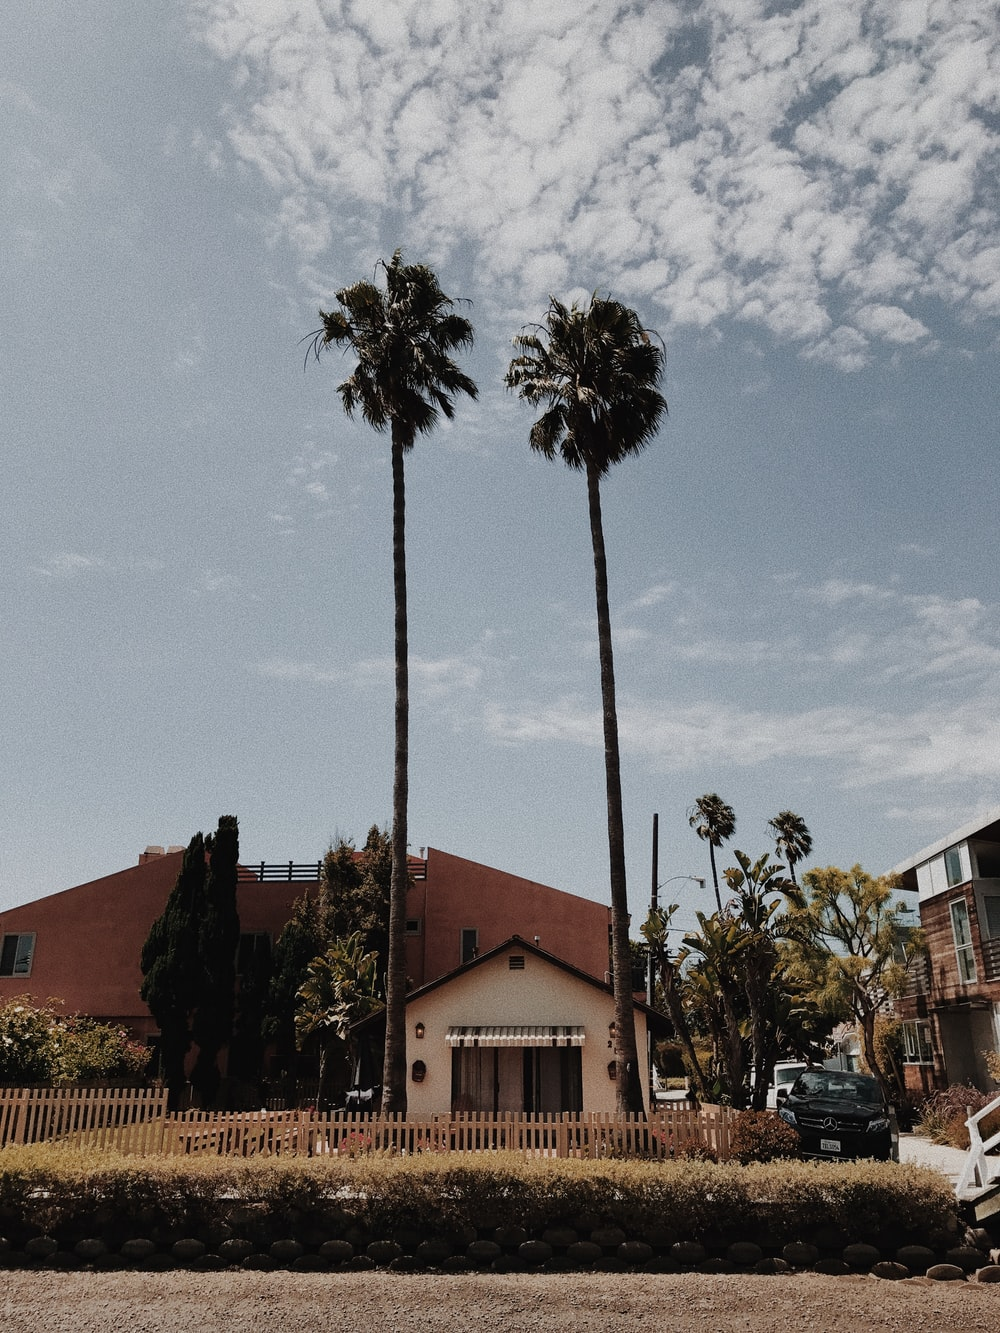 black vehicle parked beside house near green palm trees during daytime